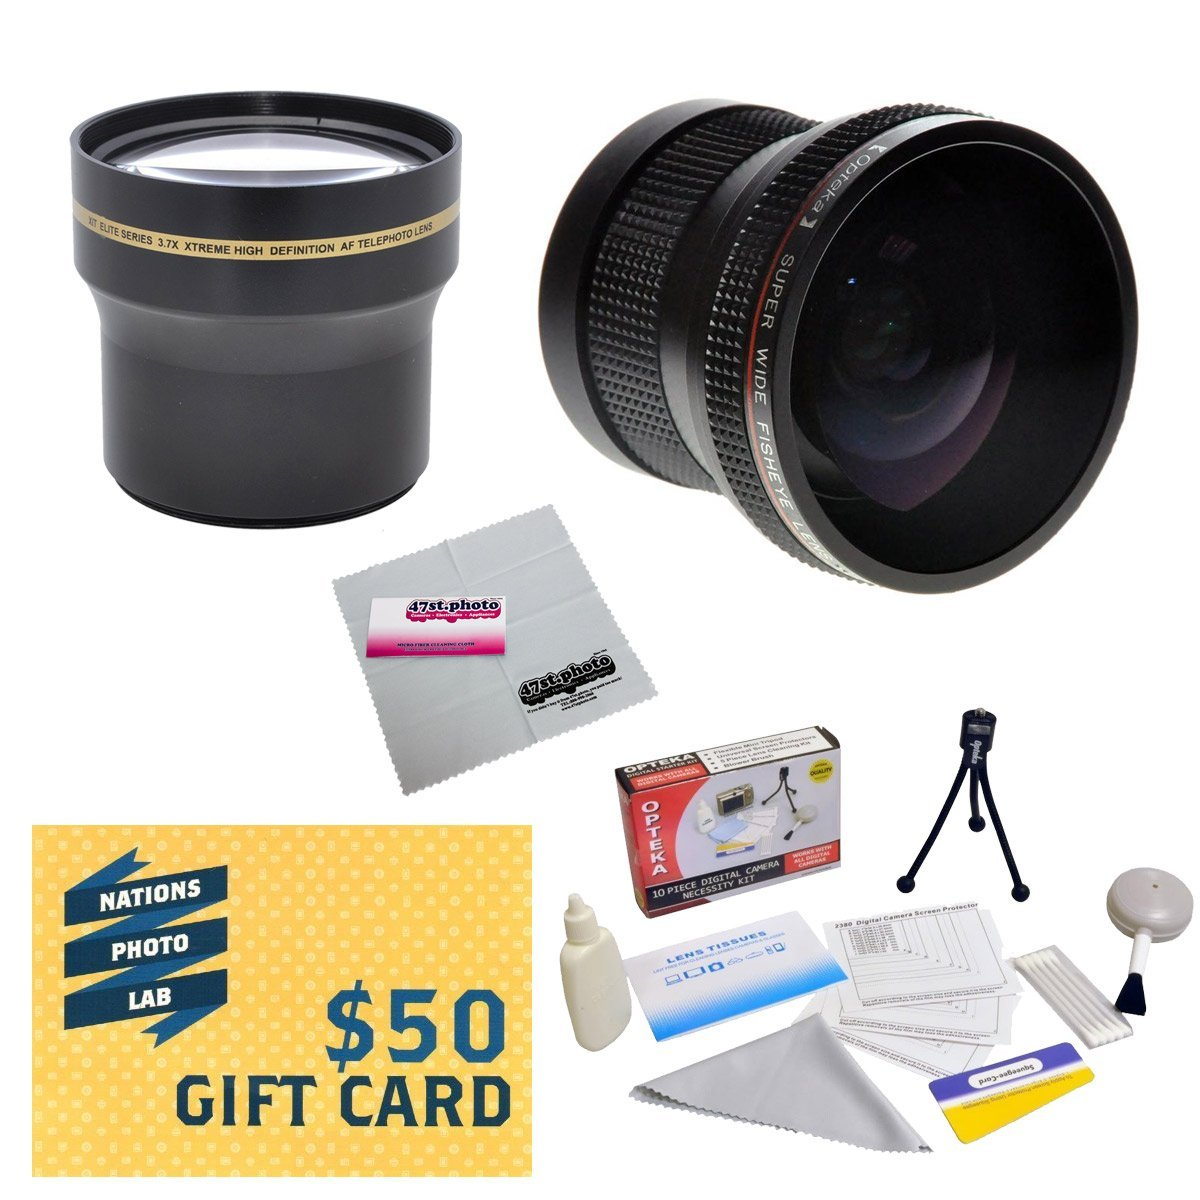 Professional 3.7X Telephoto & 0.20X Fisheye Lens Package ...